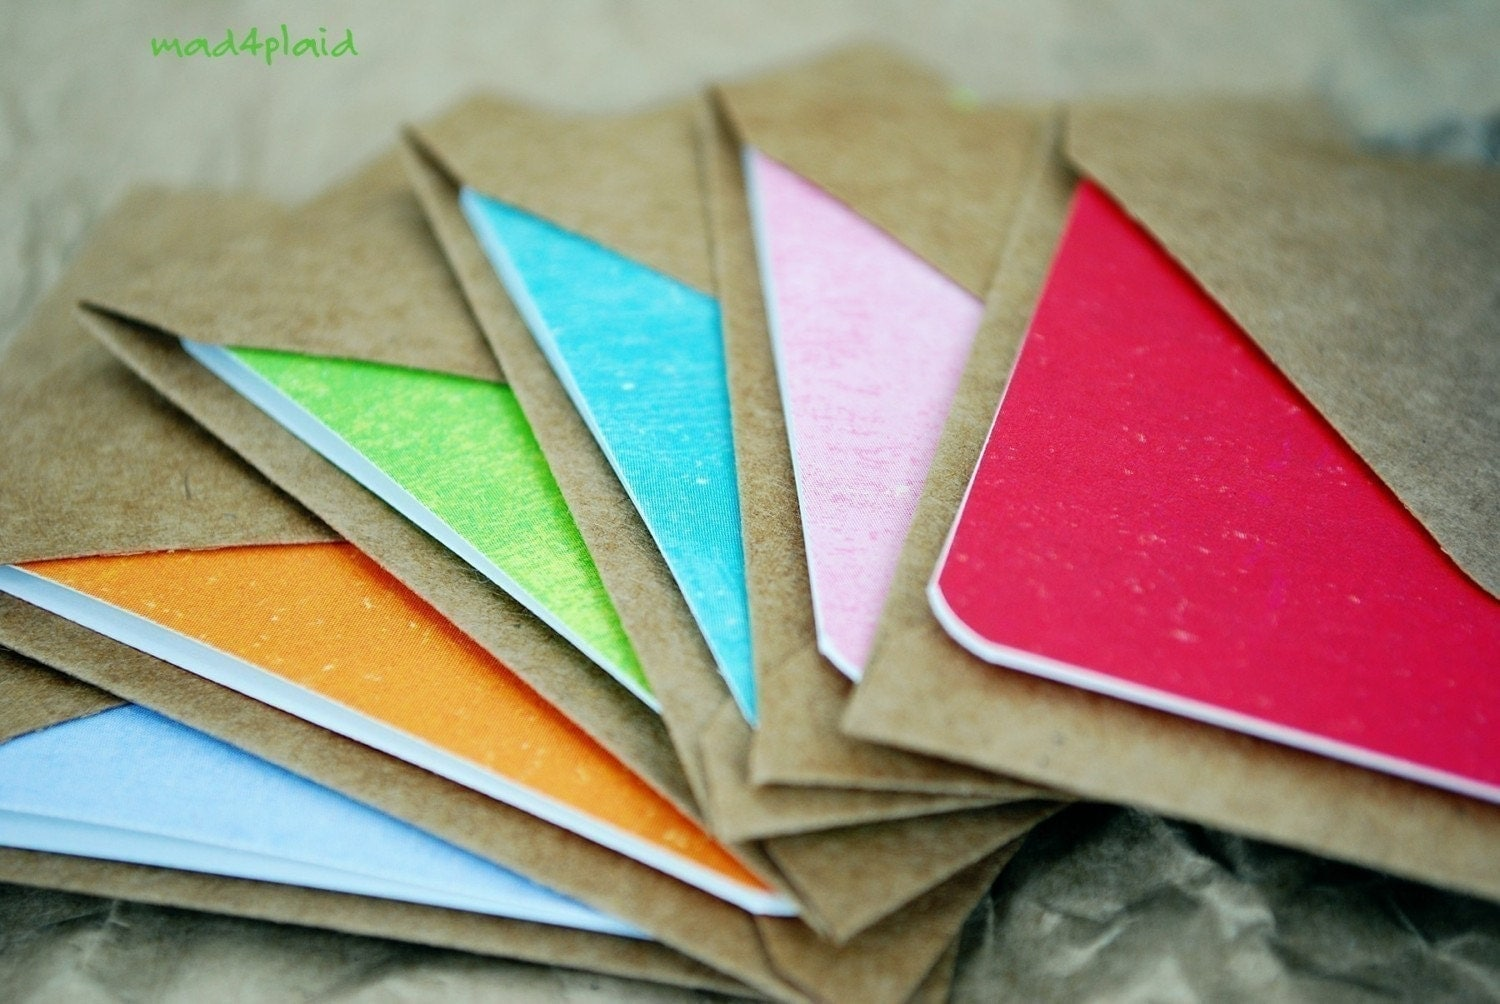 Blank Mini Card Set of 6, Spring Brights with Natural Kraft Envelopes, Handmade Paper Goods by mad4plaid on Etsy